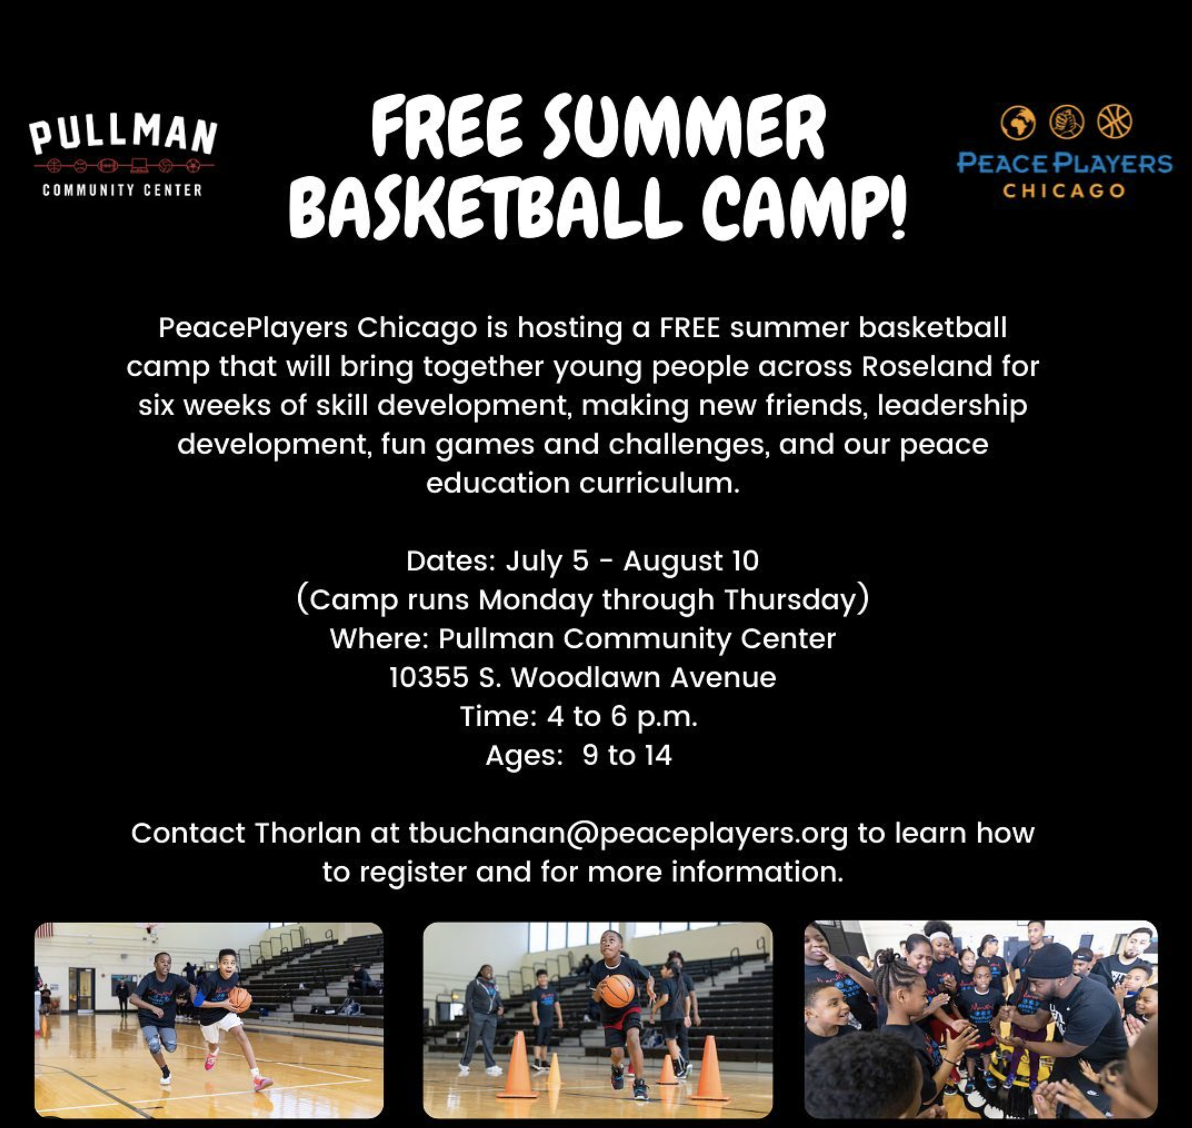 PeacePlayers Chicago 2021 Summer Camp